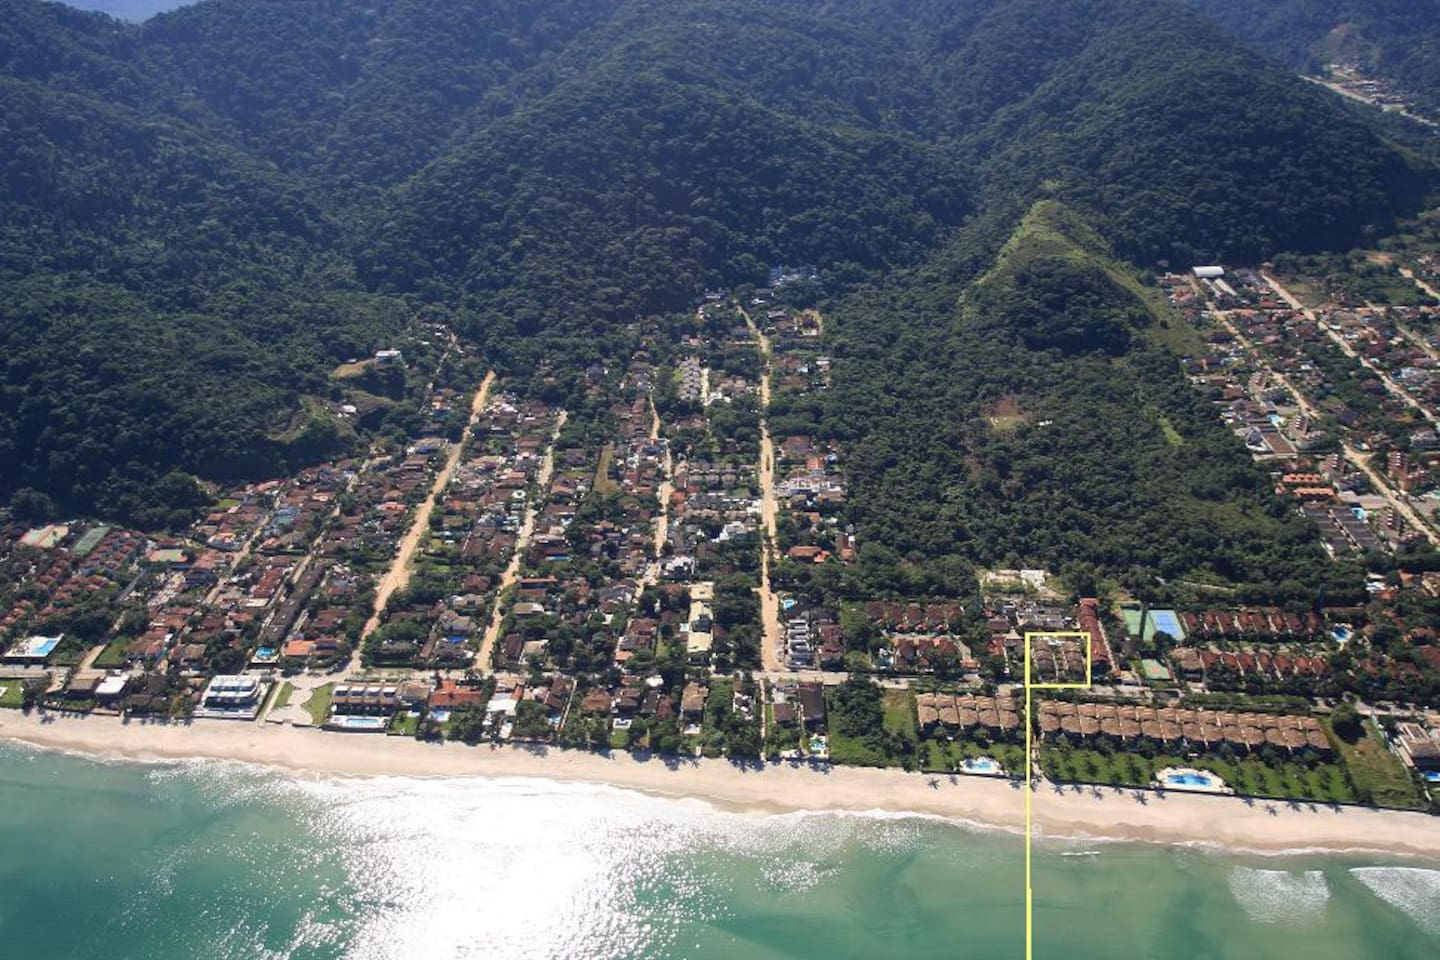 Arial view of Juquehy beach